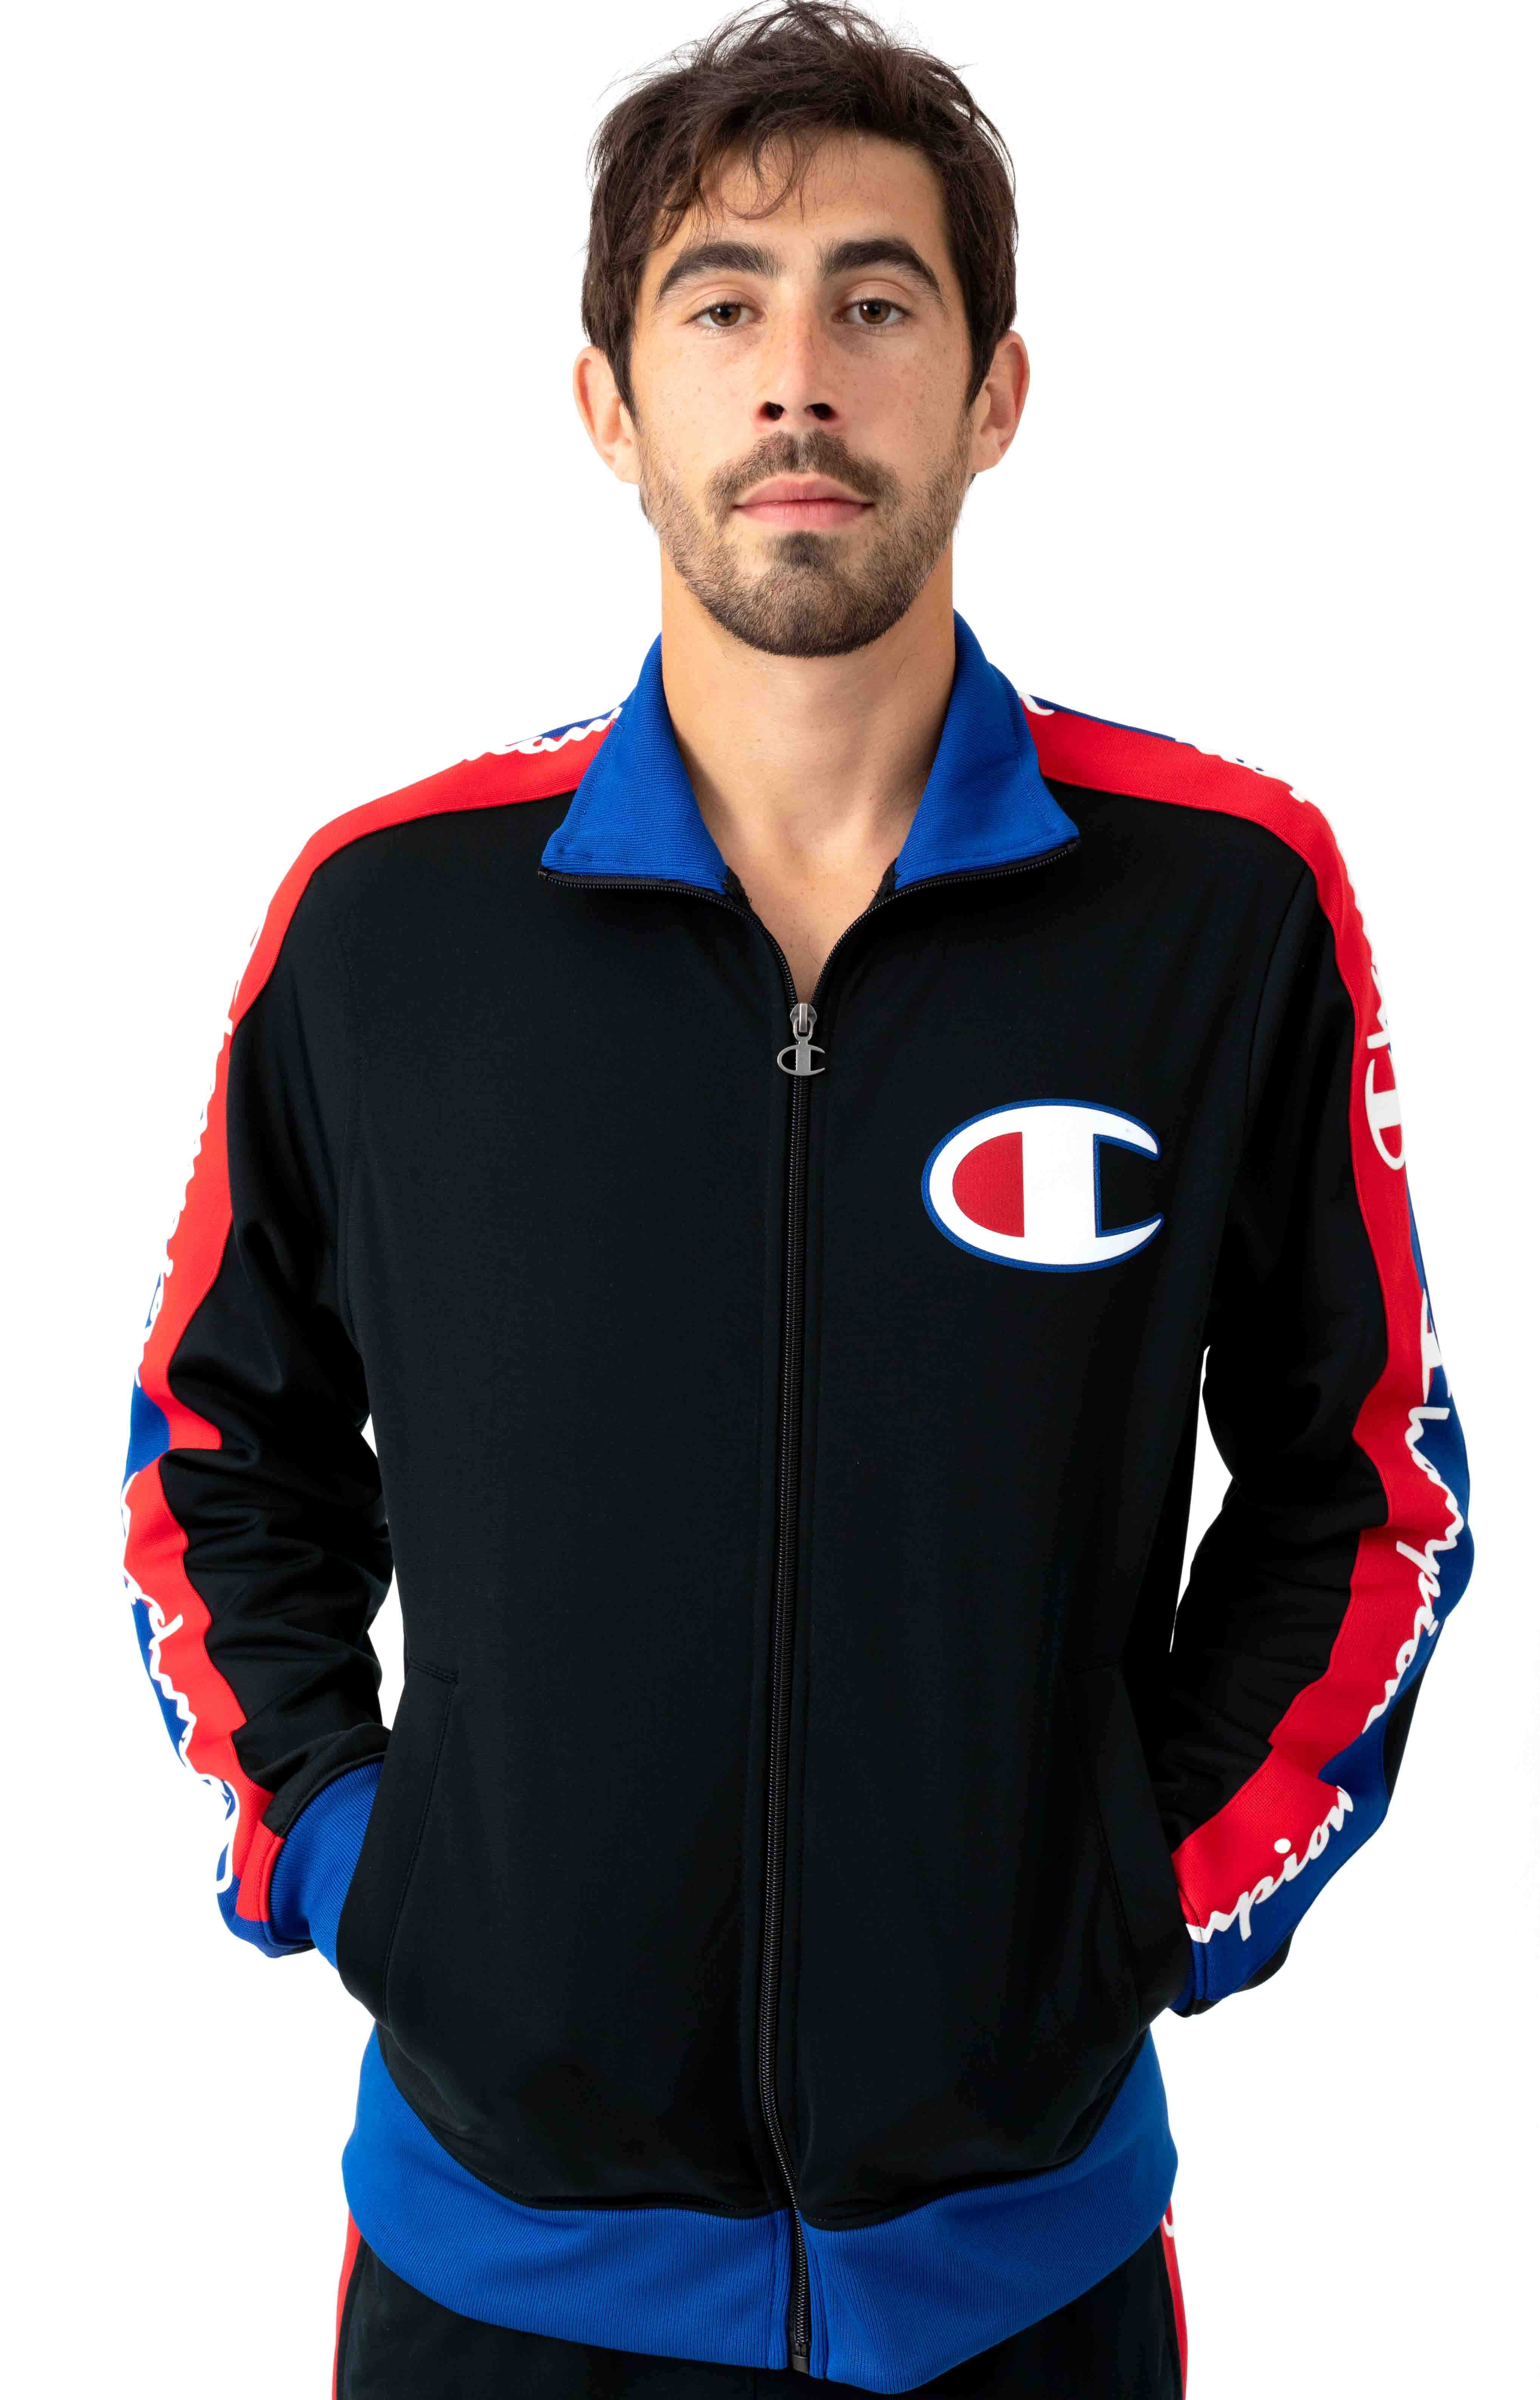 Tricot Track Jacket w/ Champion Taping - Black/Surf The Web